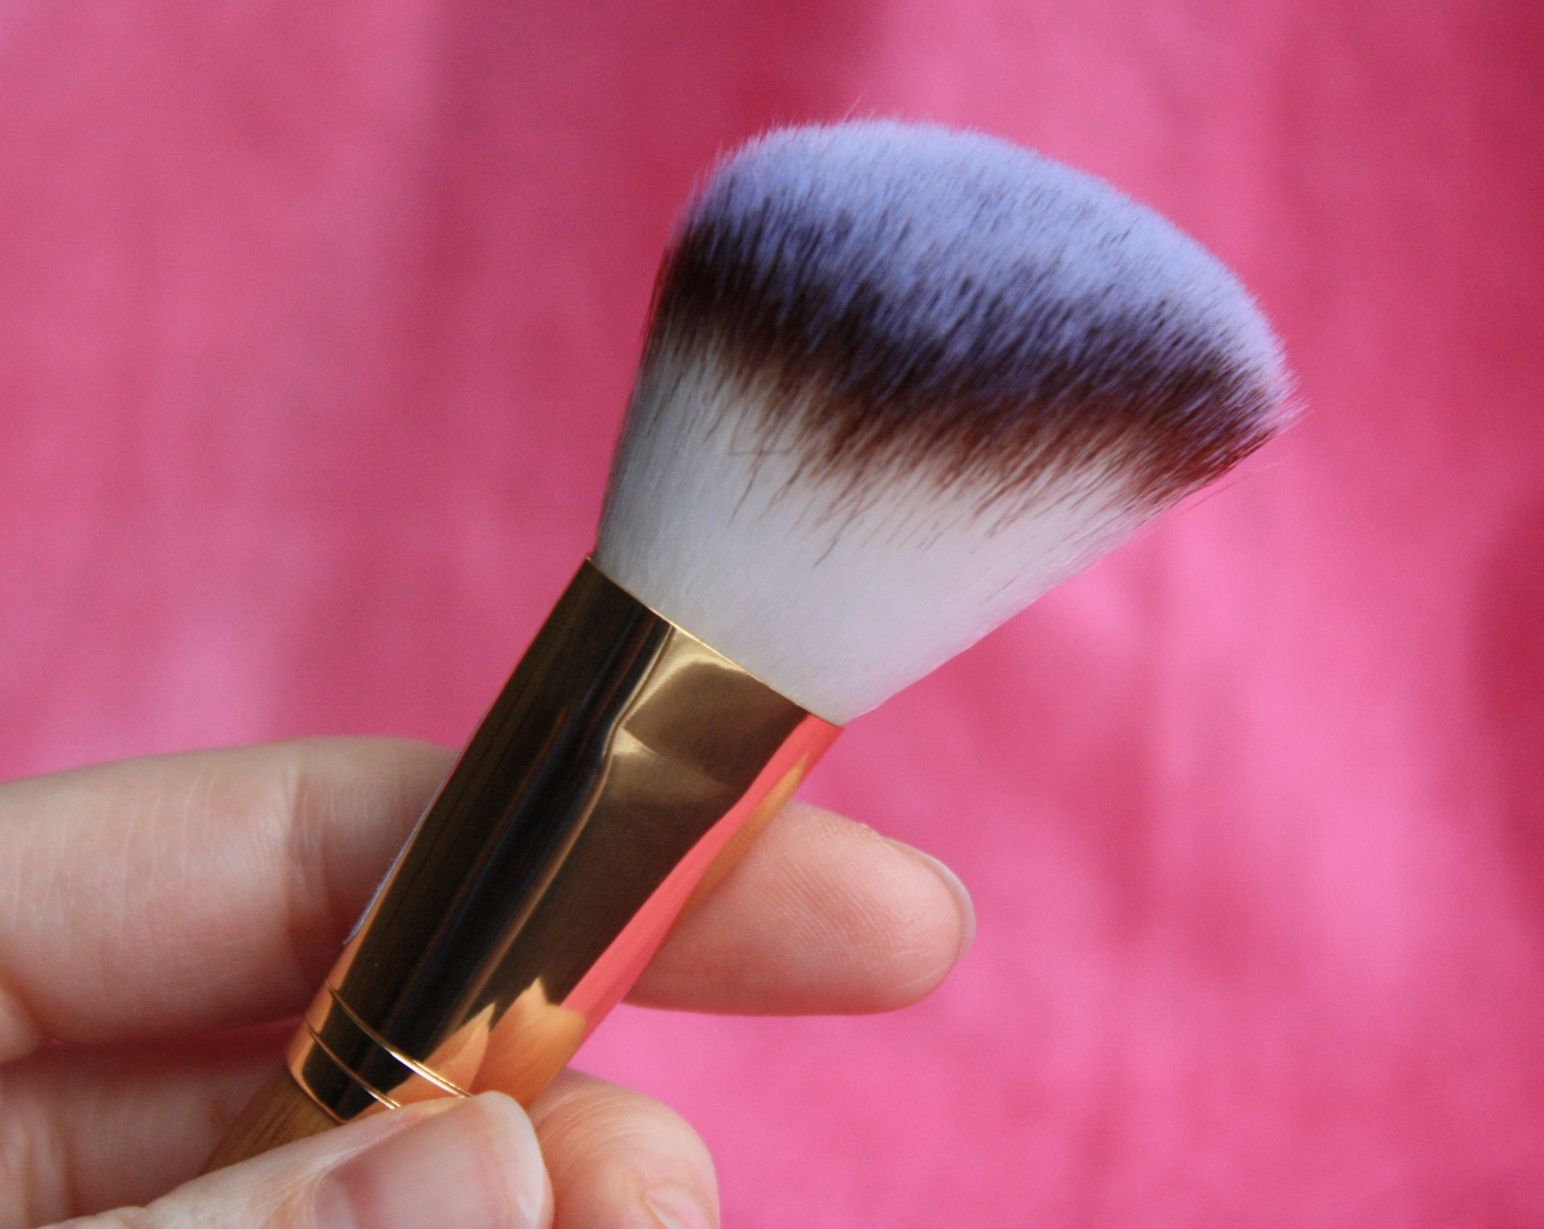 Angled Brow Brush & Spoolie by Benefit #16